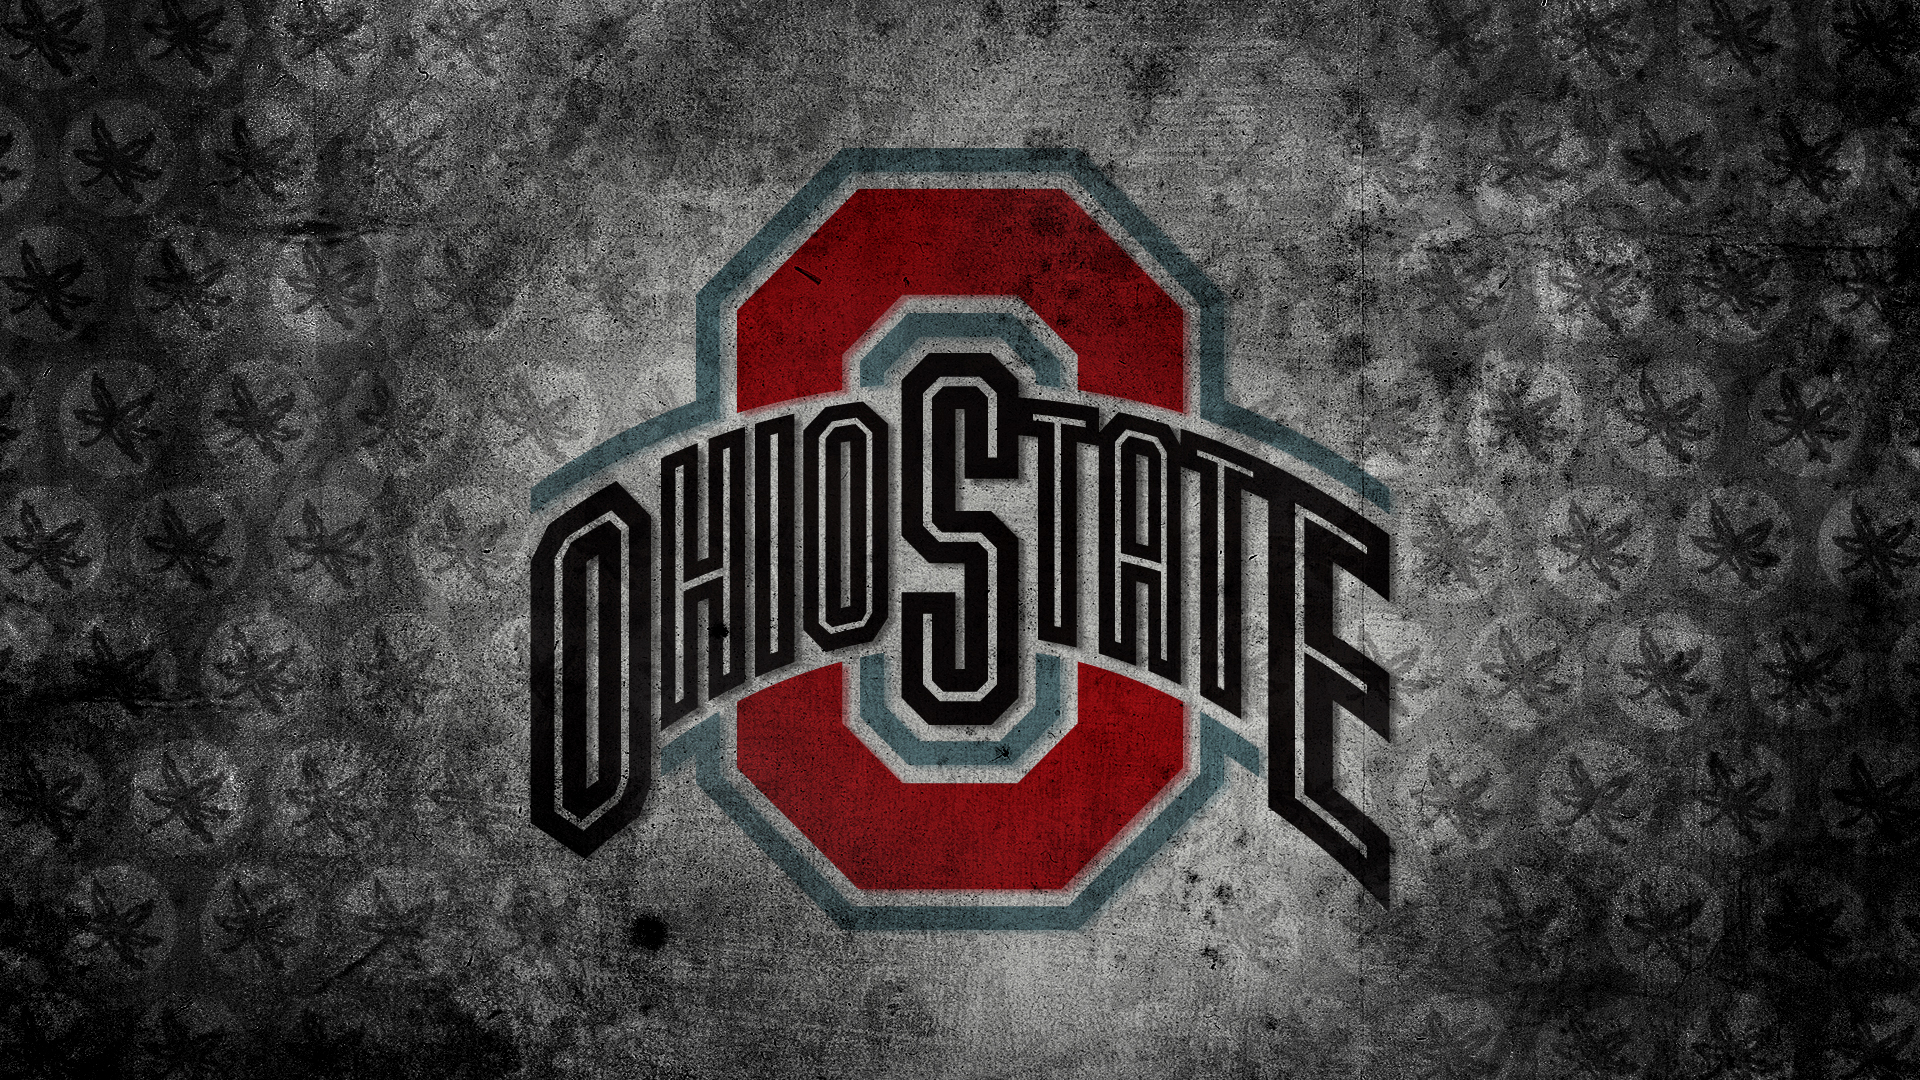 Link Dump 10 Awesome Ohio State Buckeyes Computer Desktop 1920x1080